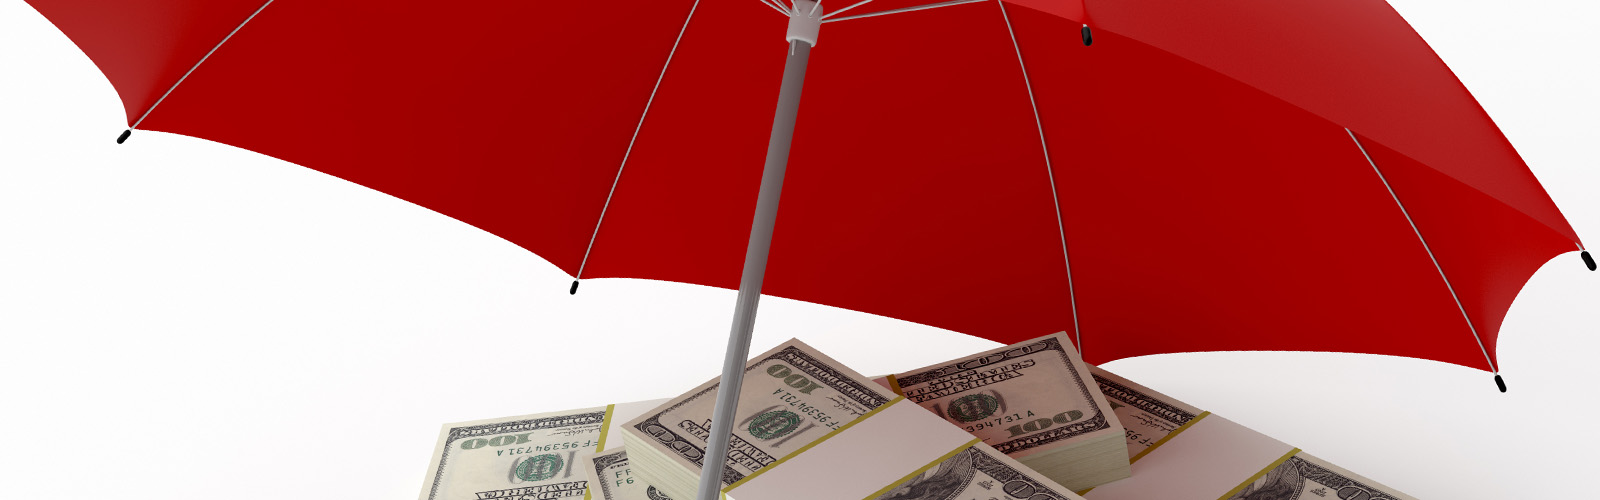 Umbrella Insurance Quote Umbrella Liability Insurance Agency In Wallingford Ct